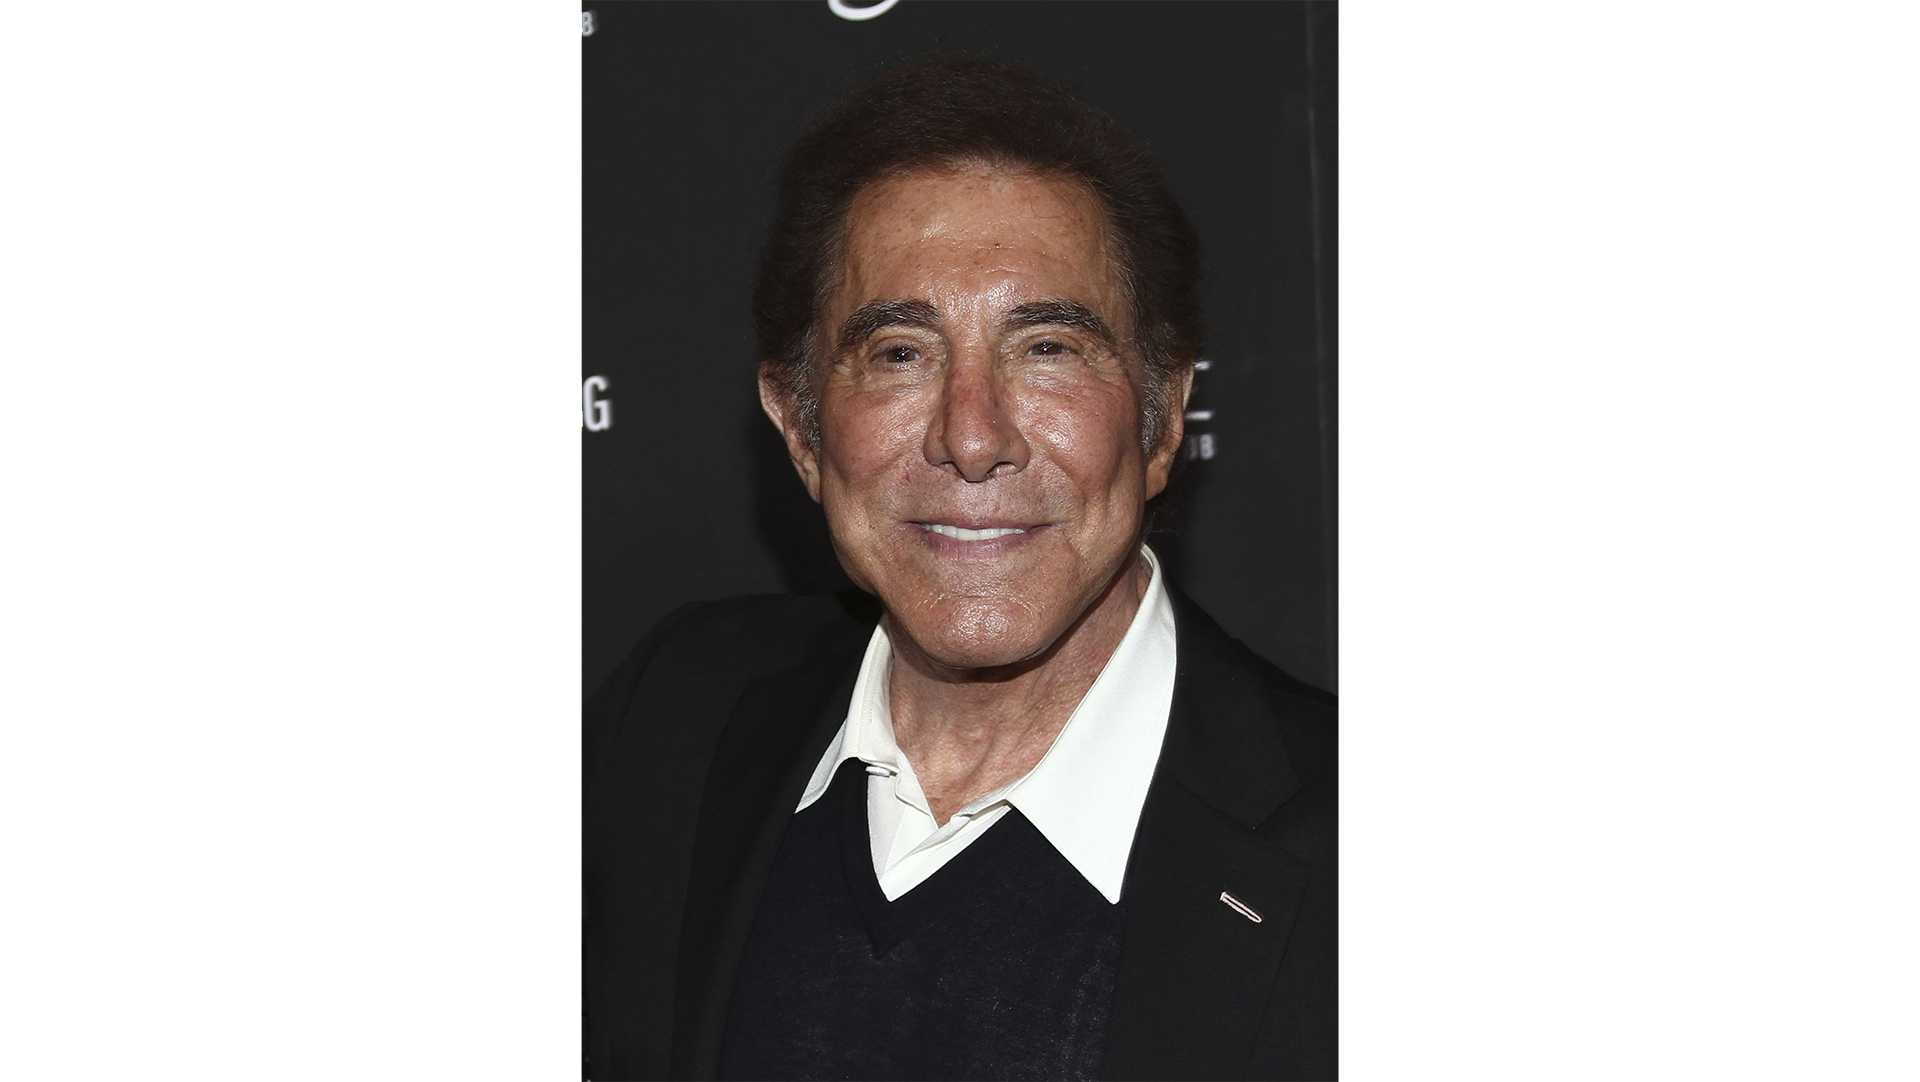 Steve Wynn arrives for the grand opening of Intrigue Nightclub on April 29, 2016, at Wynn Las Vegas in Las Vegas. (GPA/imageSPACE/Sipa USA/TNS)